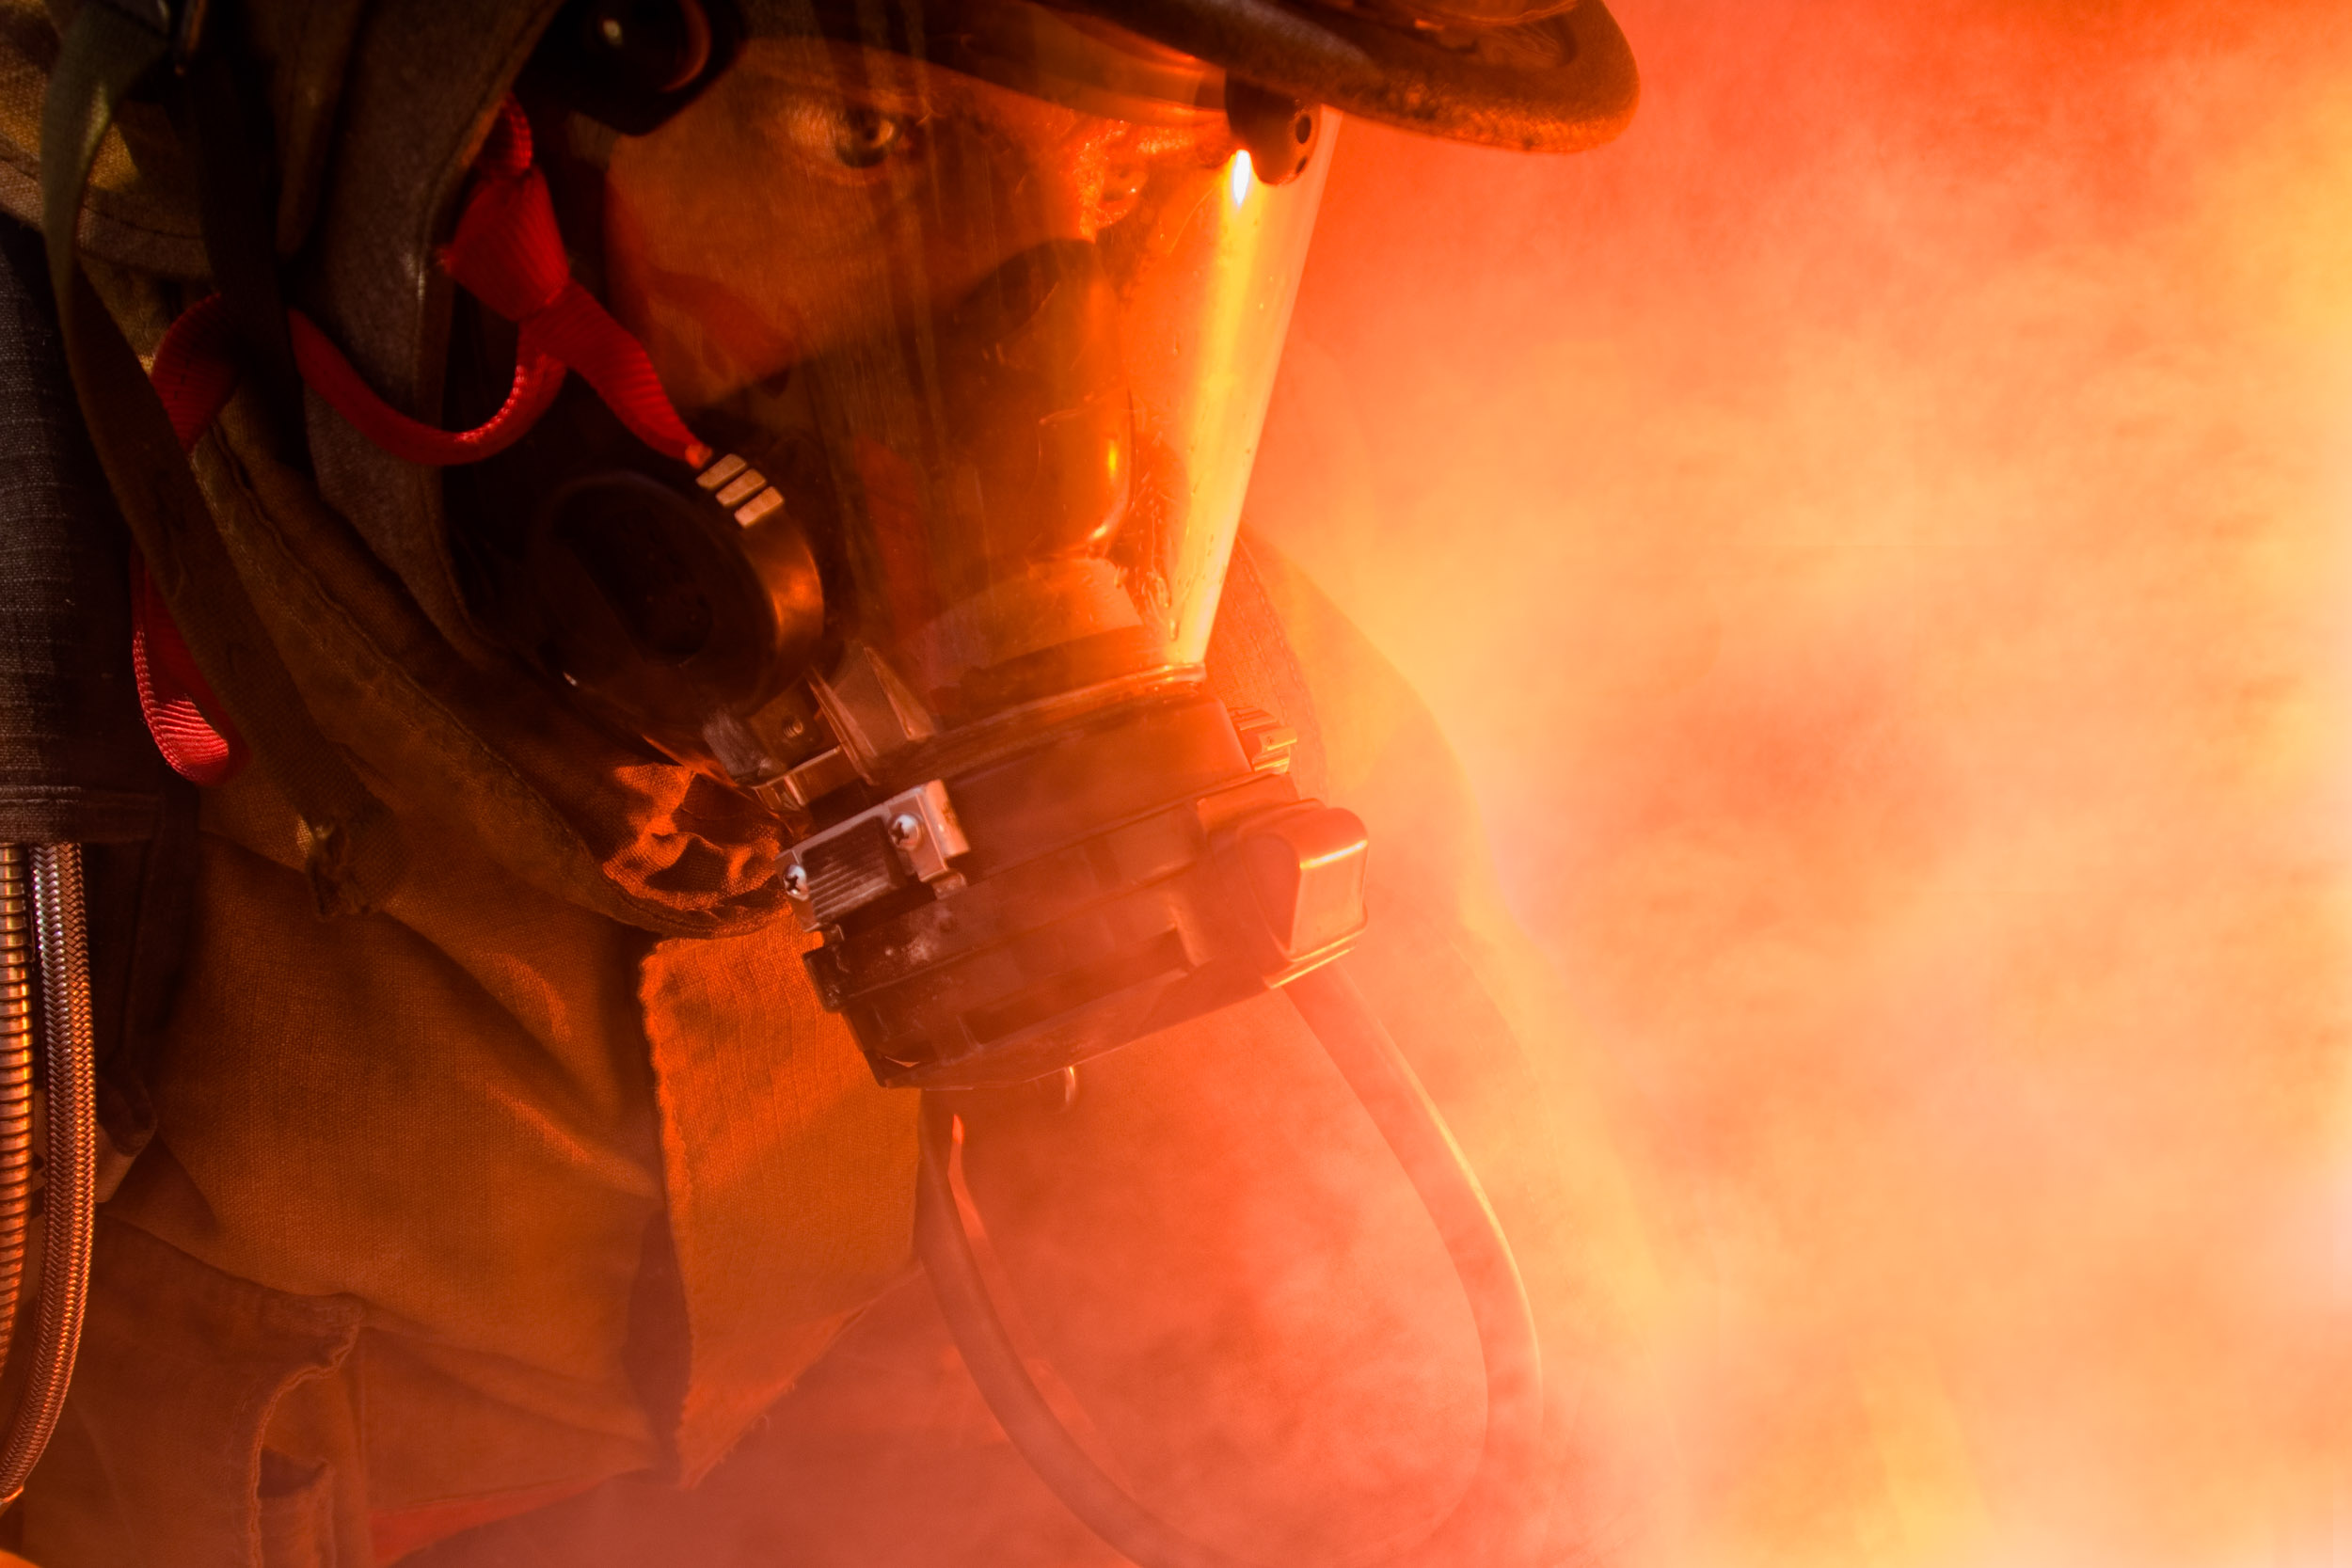 Close portrait of a firefighter in action.